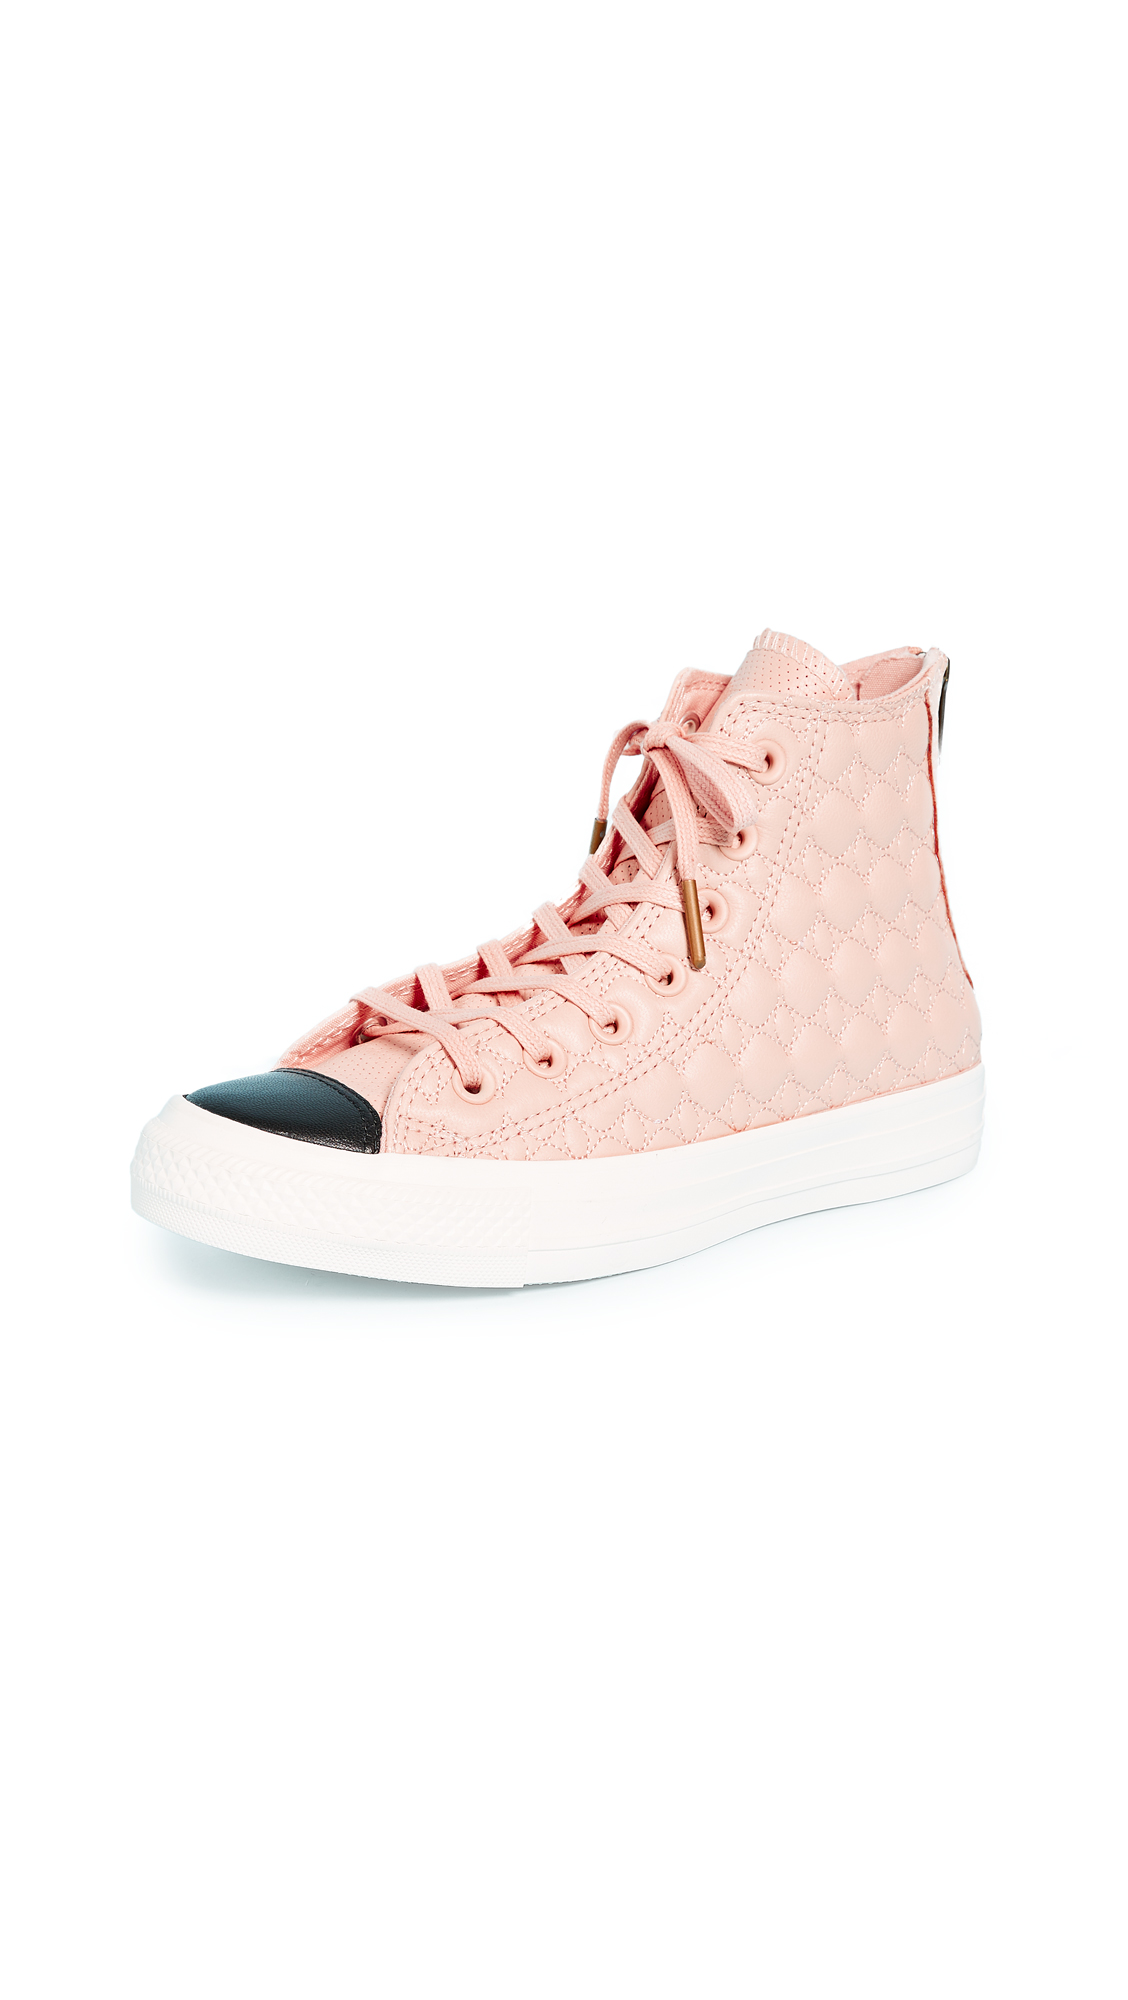 Converse Chuck Taylor All Star Back Zip High Top Sneakers - Dusk Pink/Egret/Black